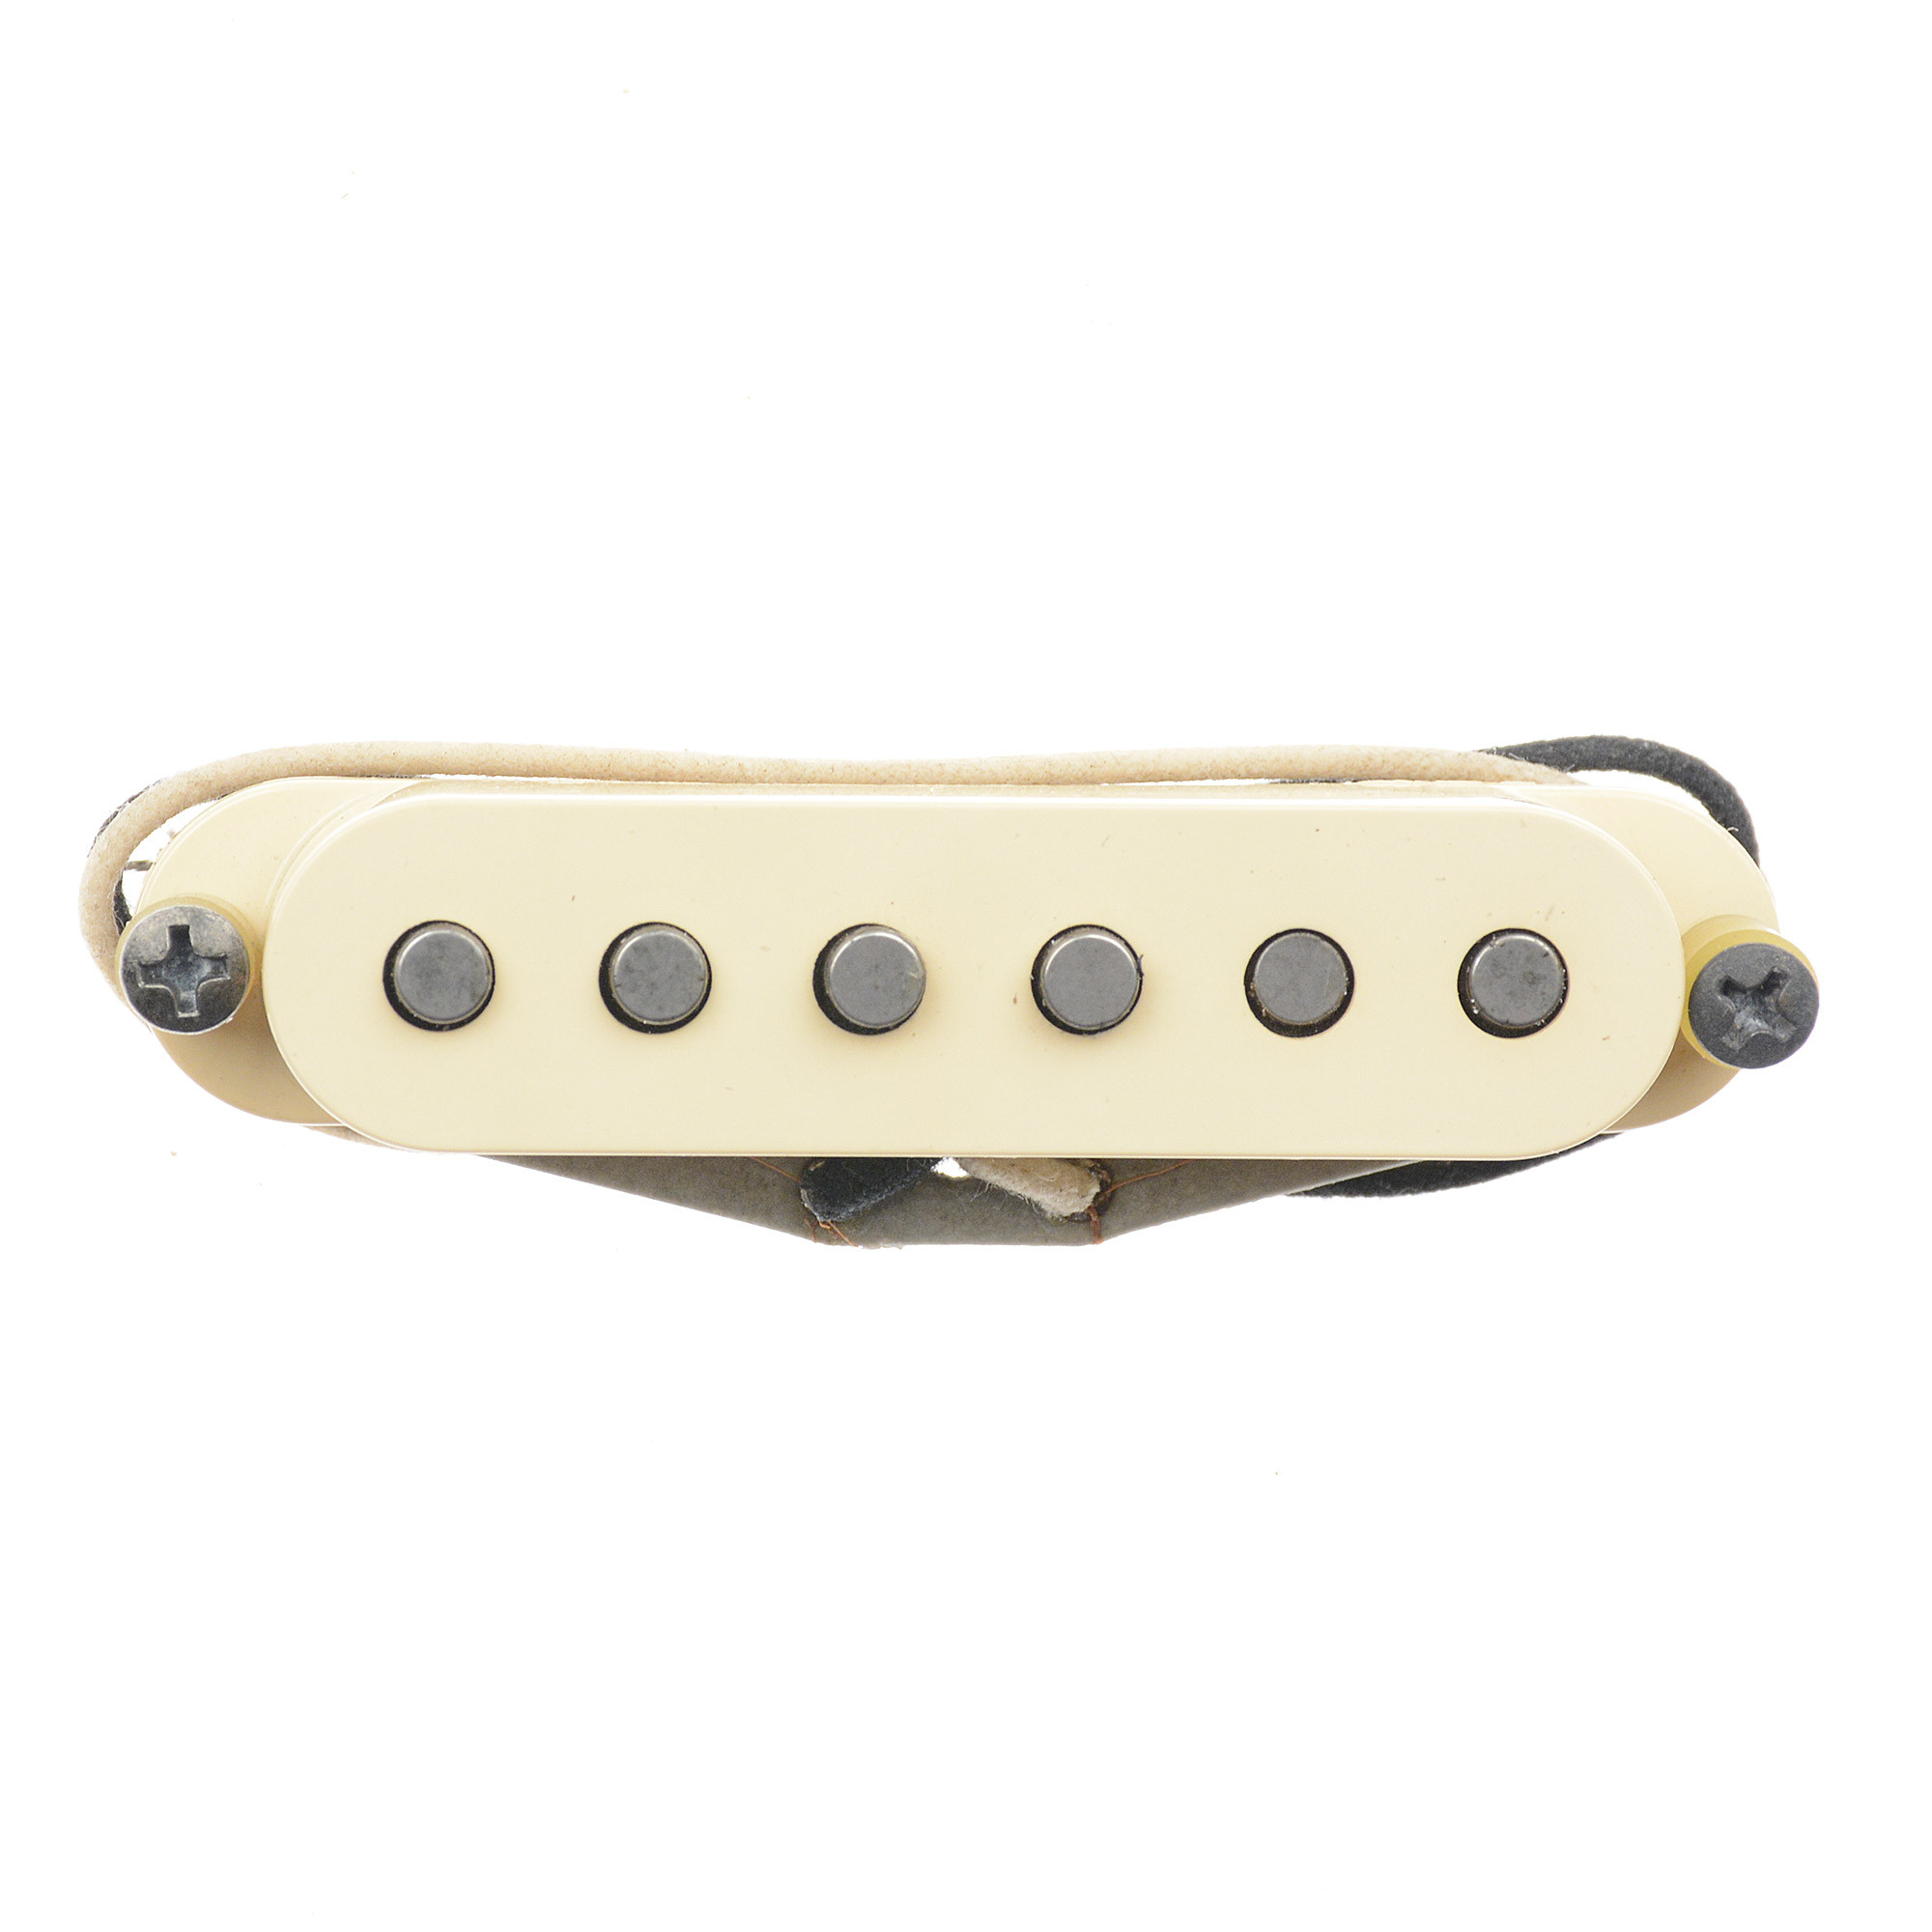 Seymour Duncan Antiquity II Surf for Strat by Seymour Duncan